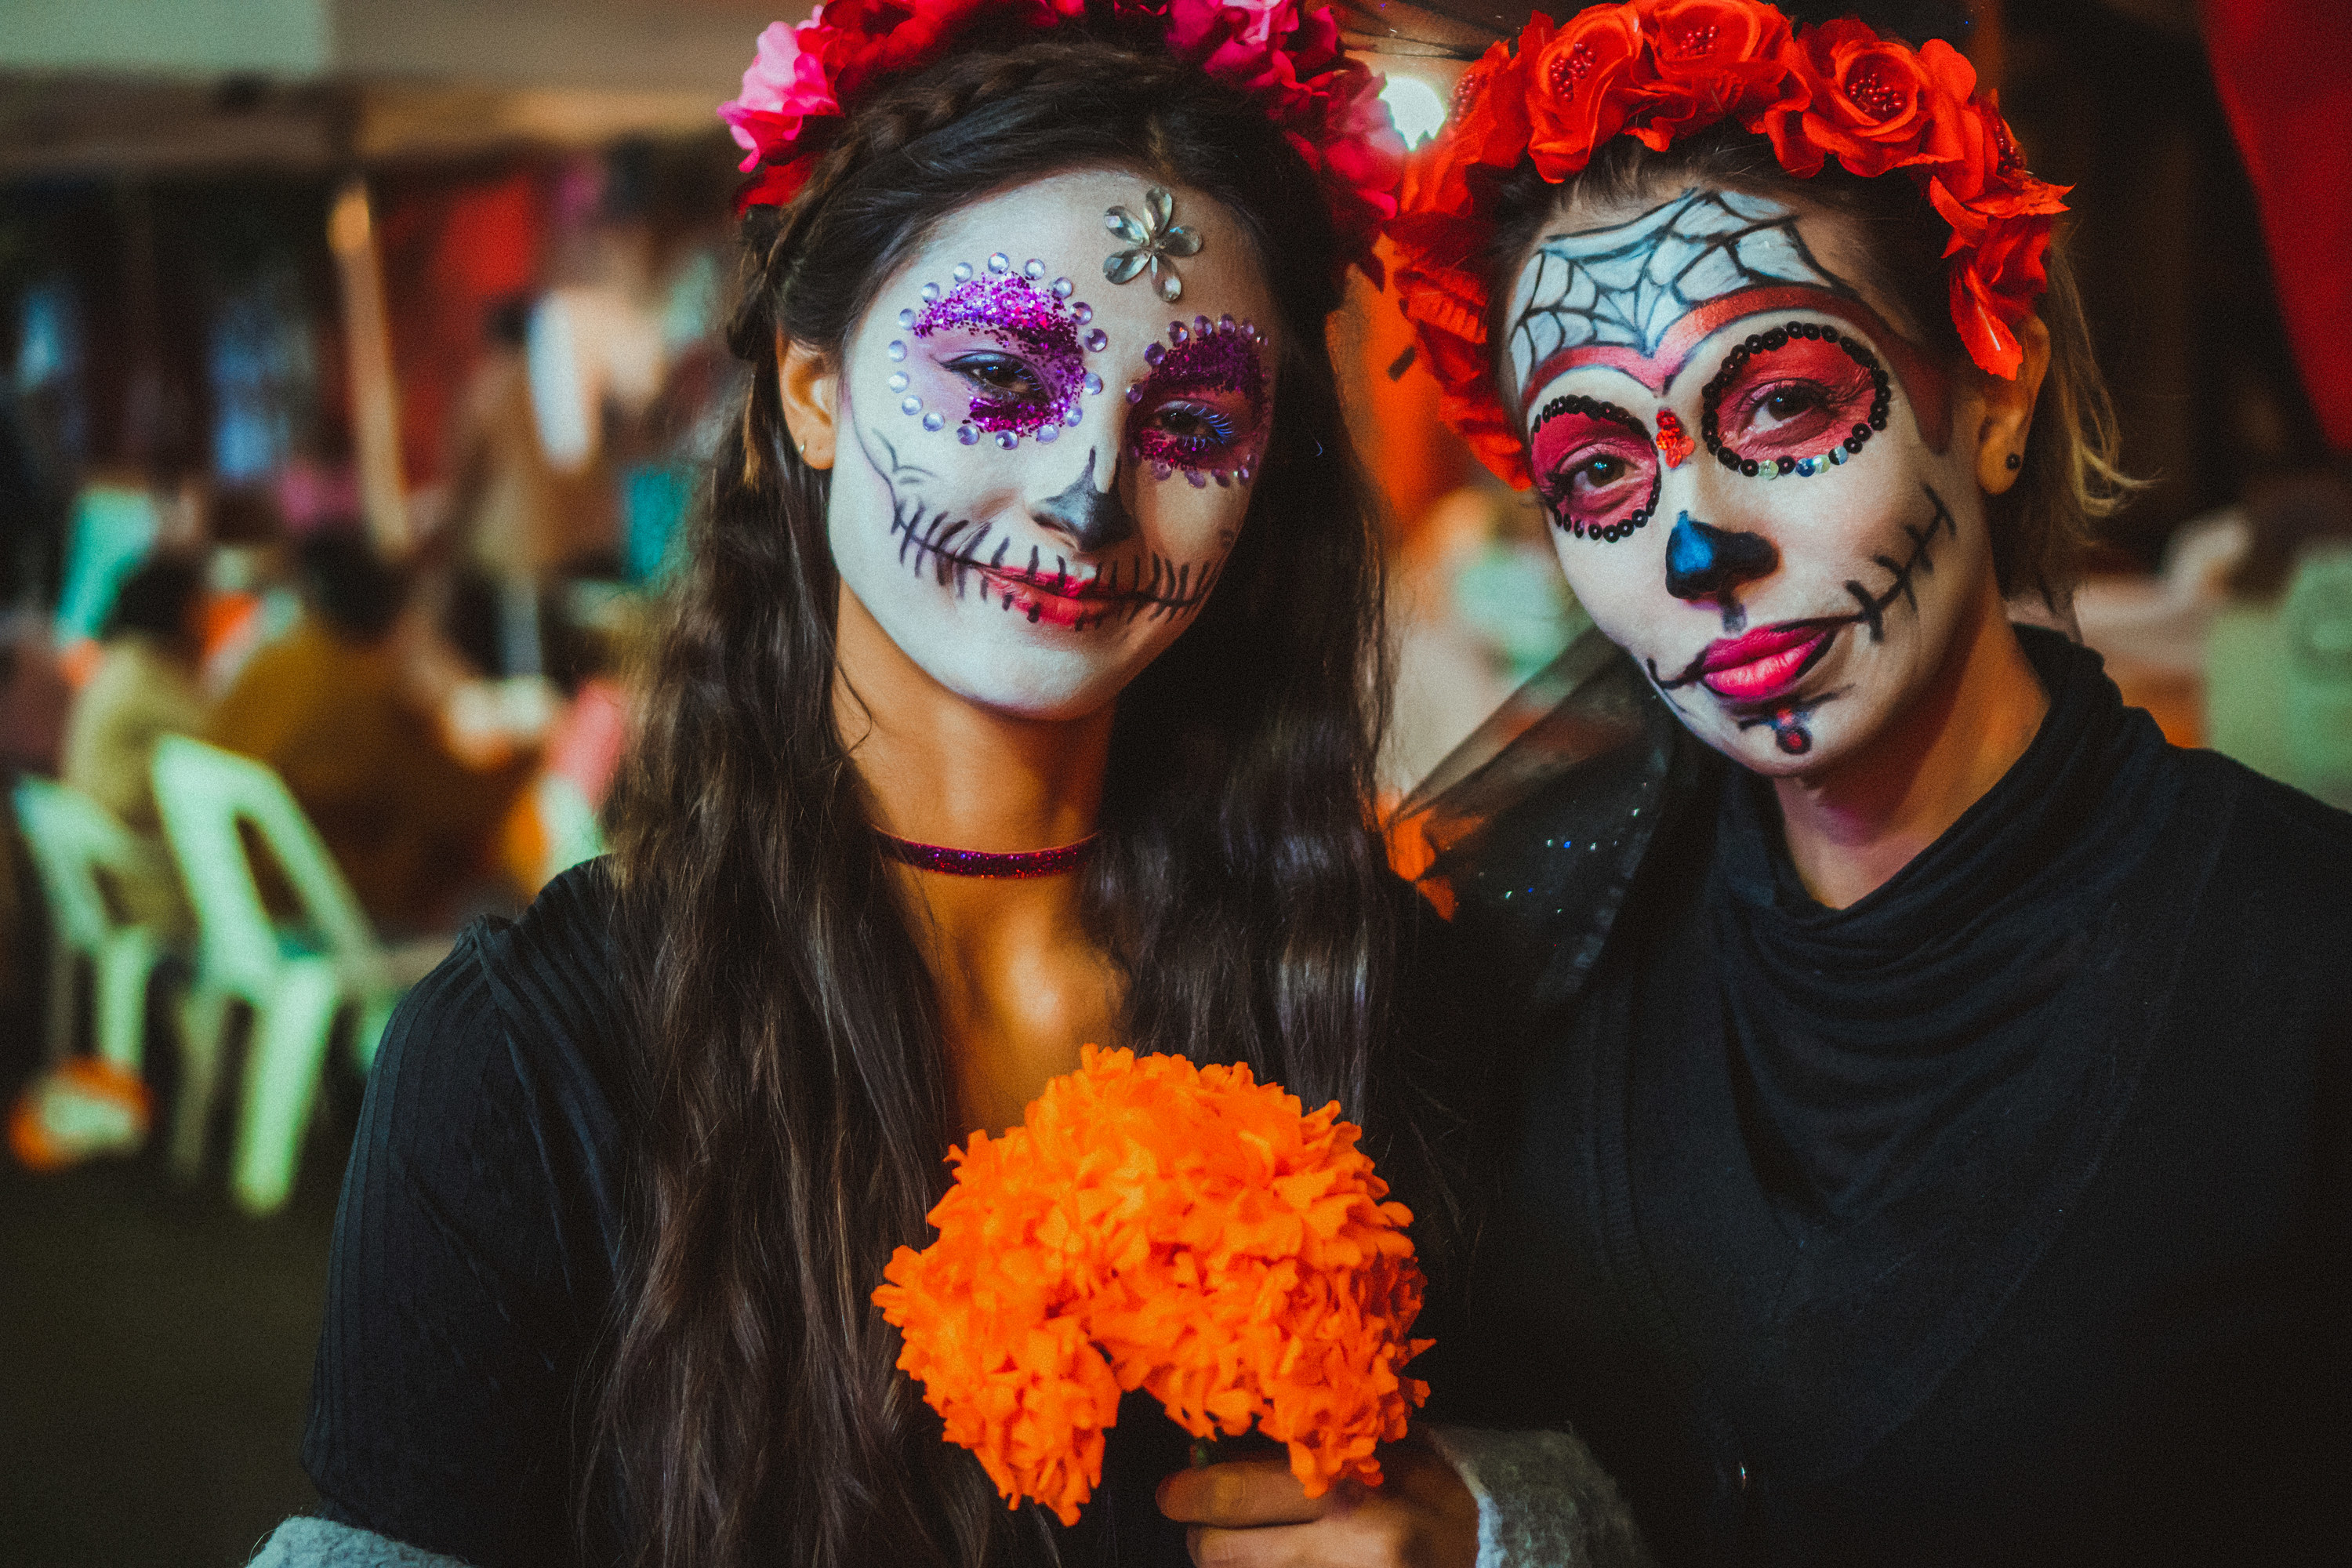 A mother and daughter wearing tradition skull face paint for Day of the Dead